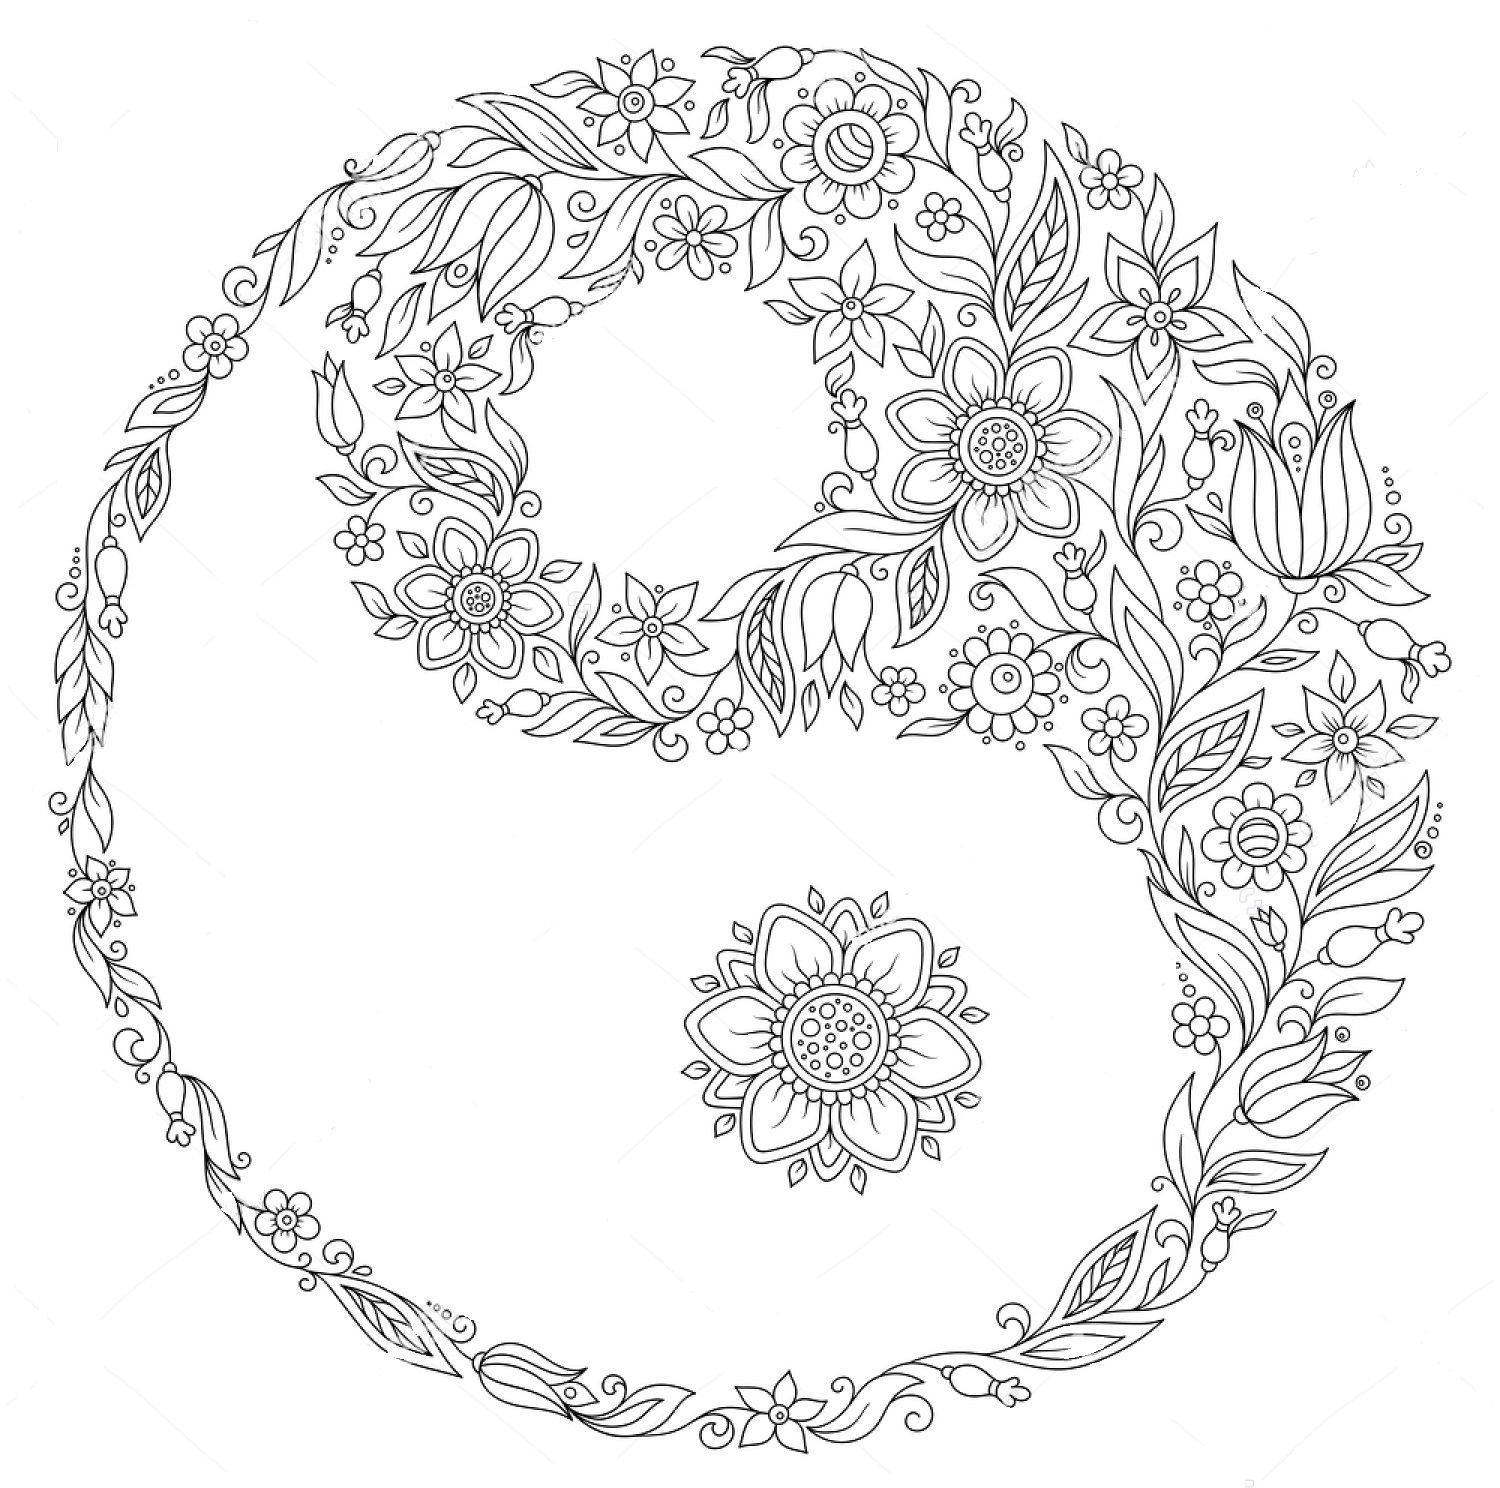 Yin Yang Zentangle Coloring Page Mandala Coloring Pages Mandala